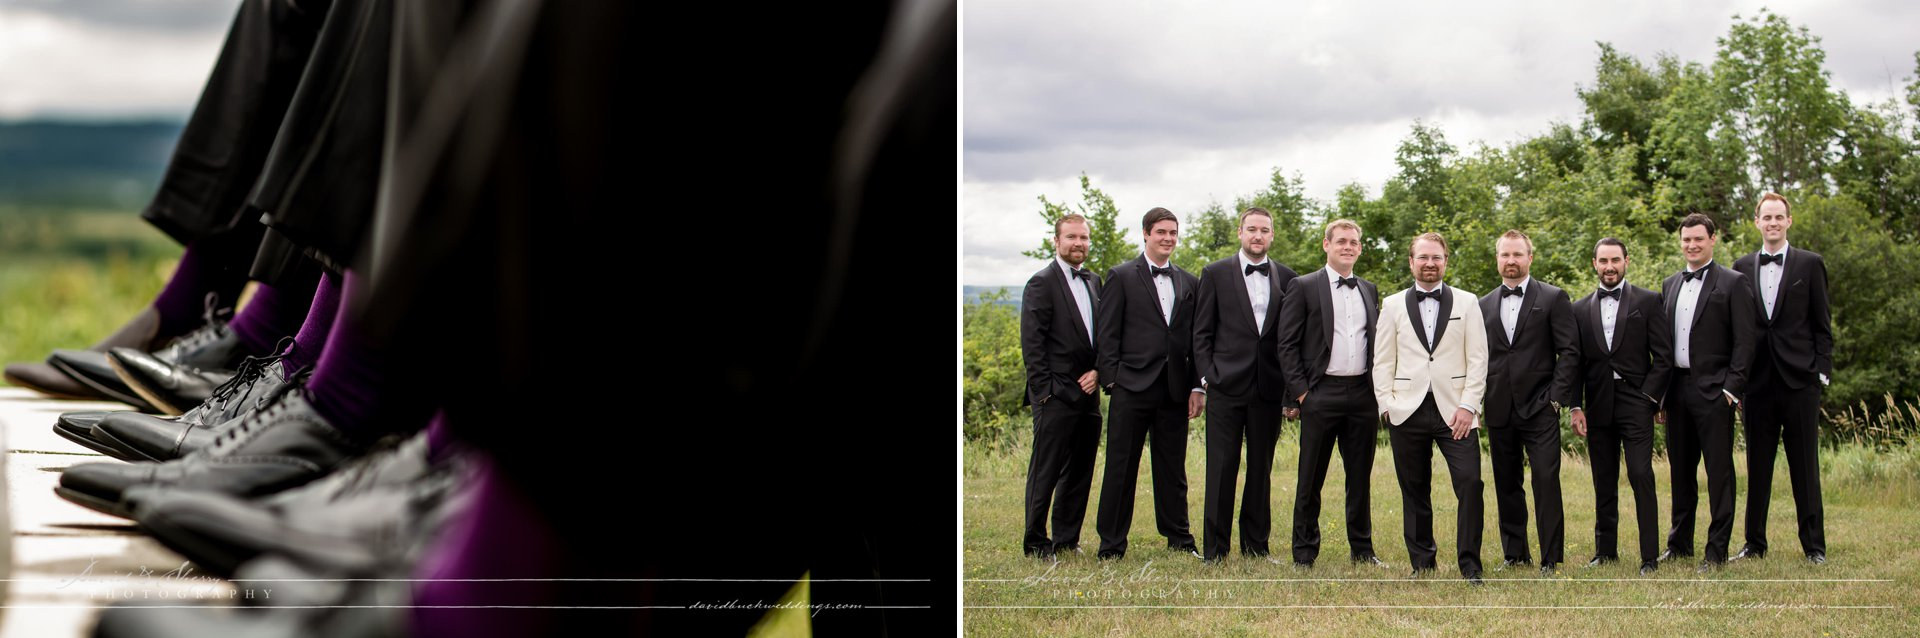 Craigleith_Ski_Club_Wedding_005